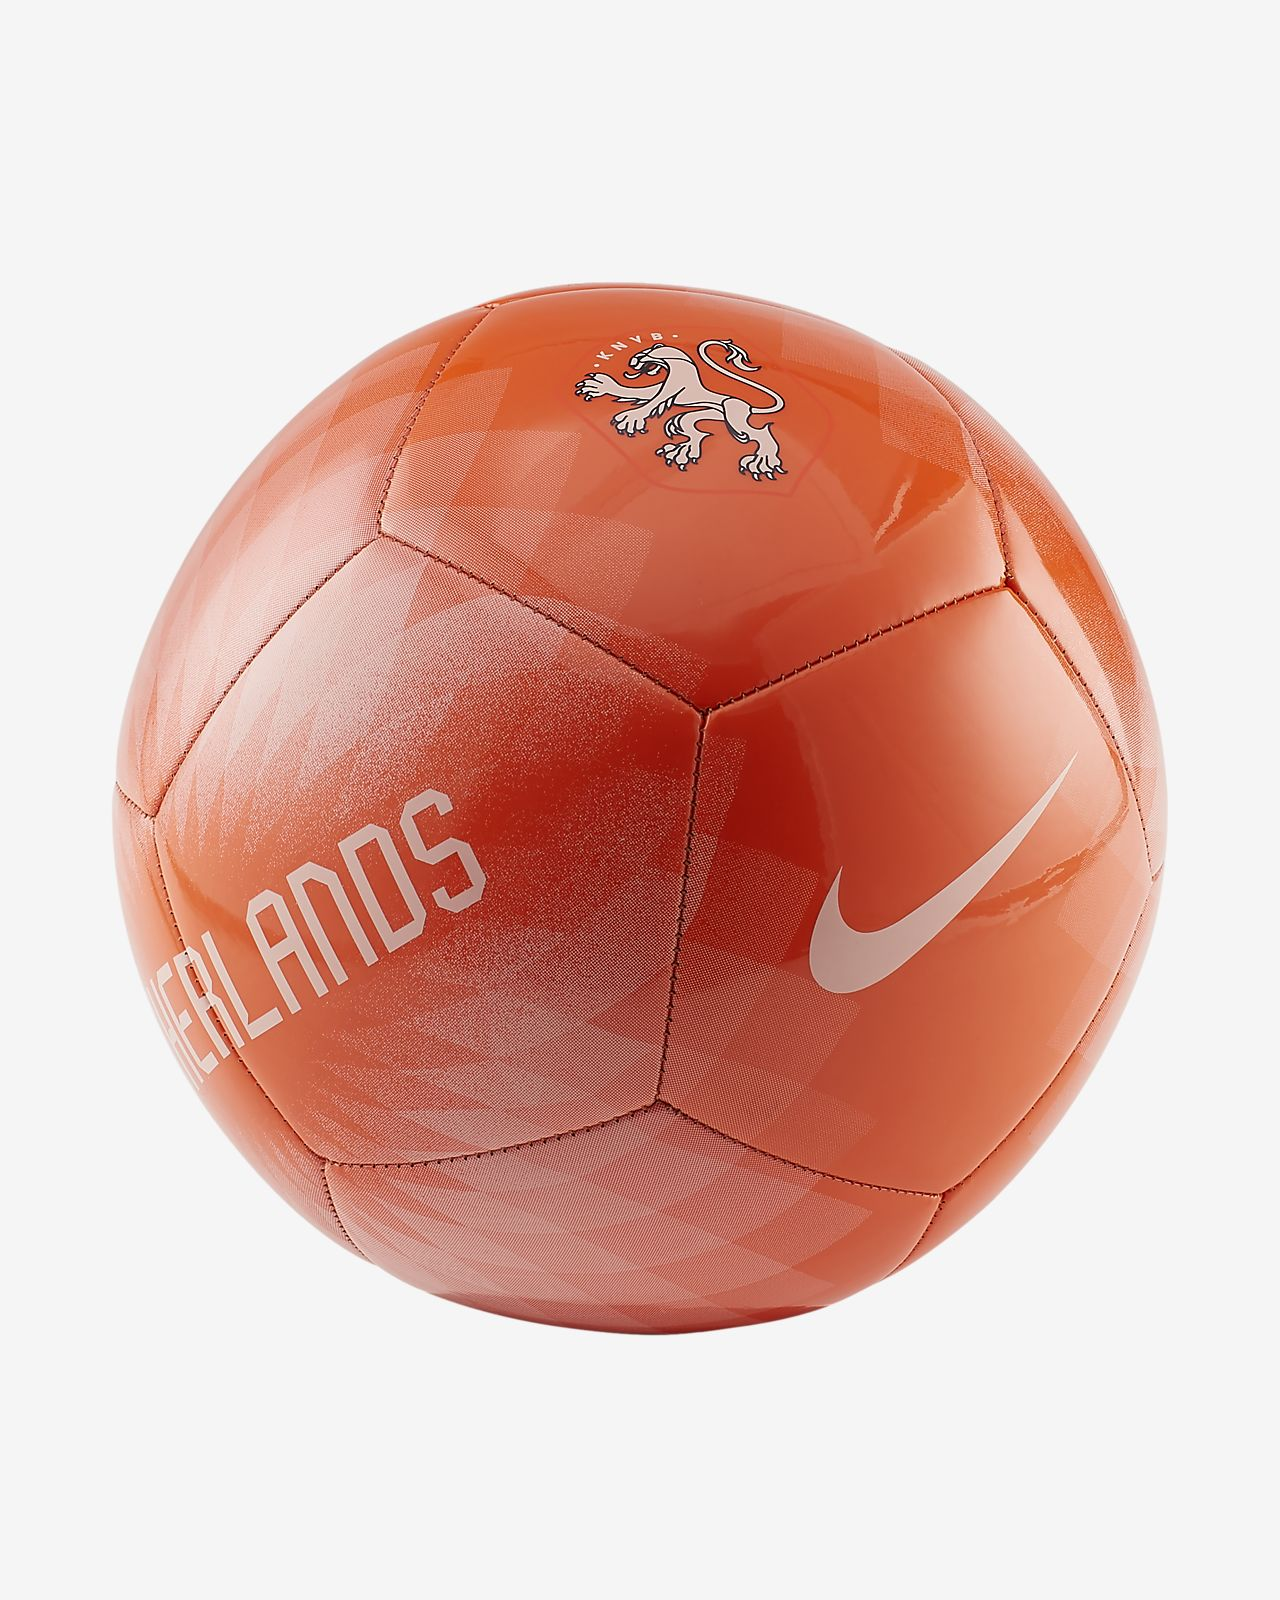 Pallone da calcio Netherlands Pitch